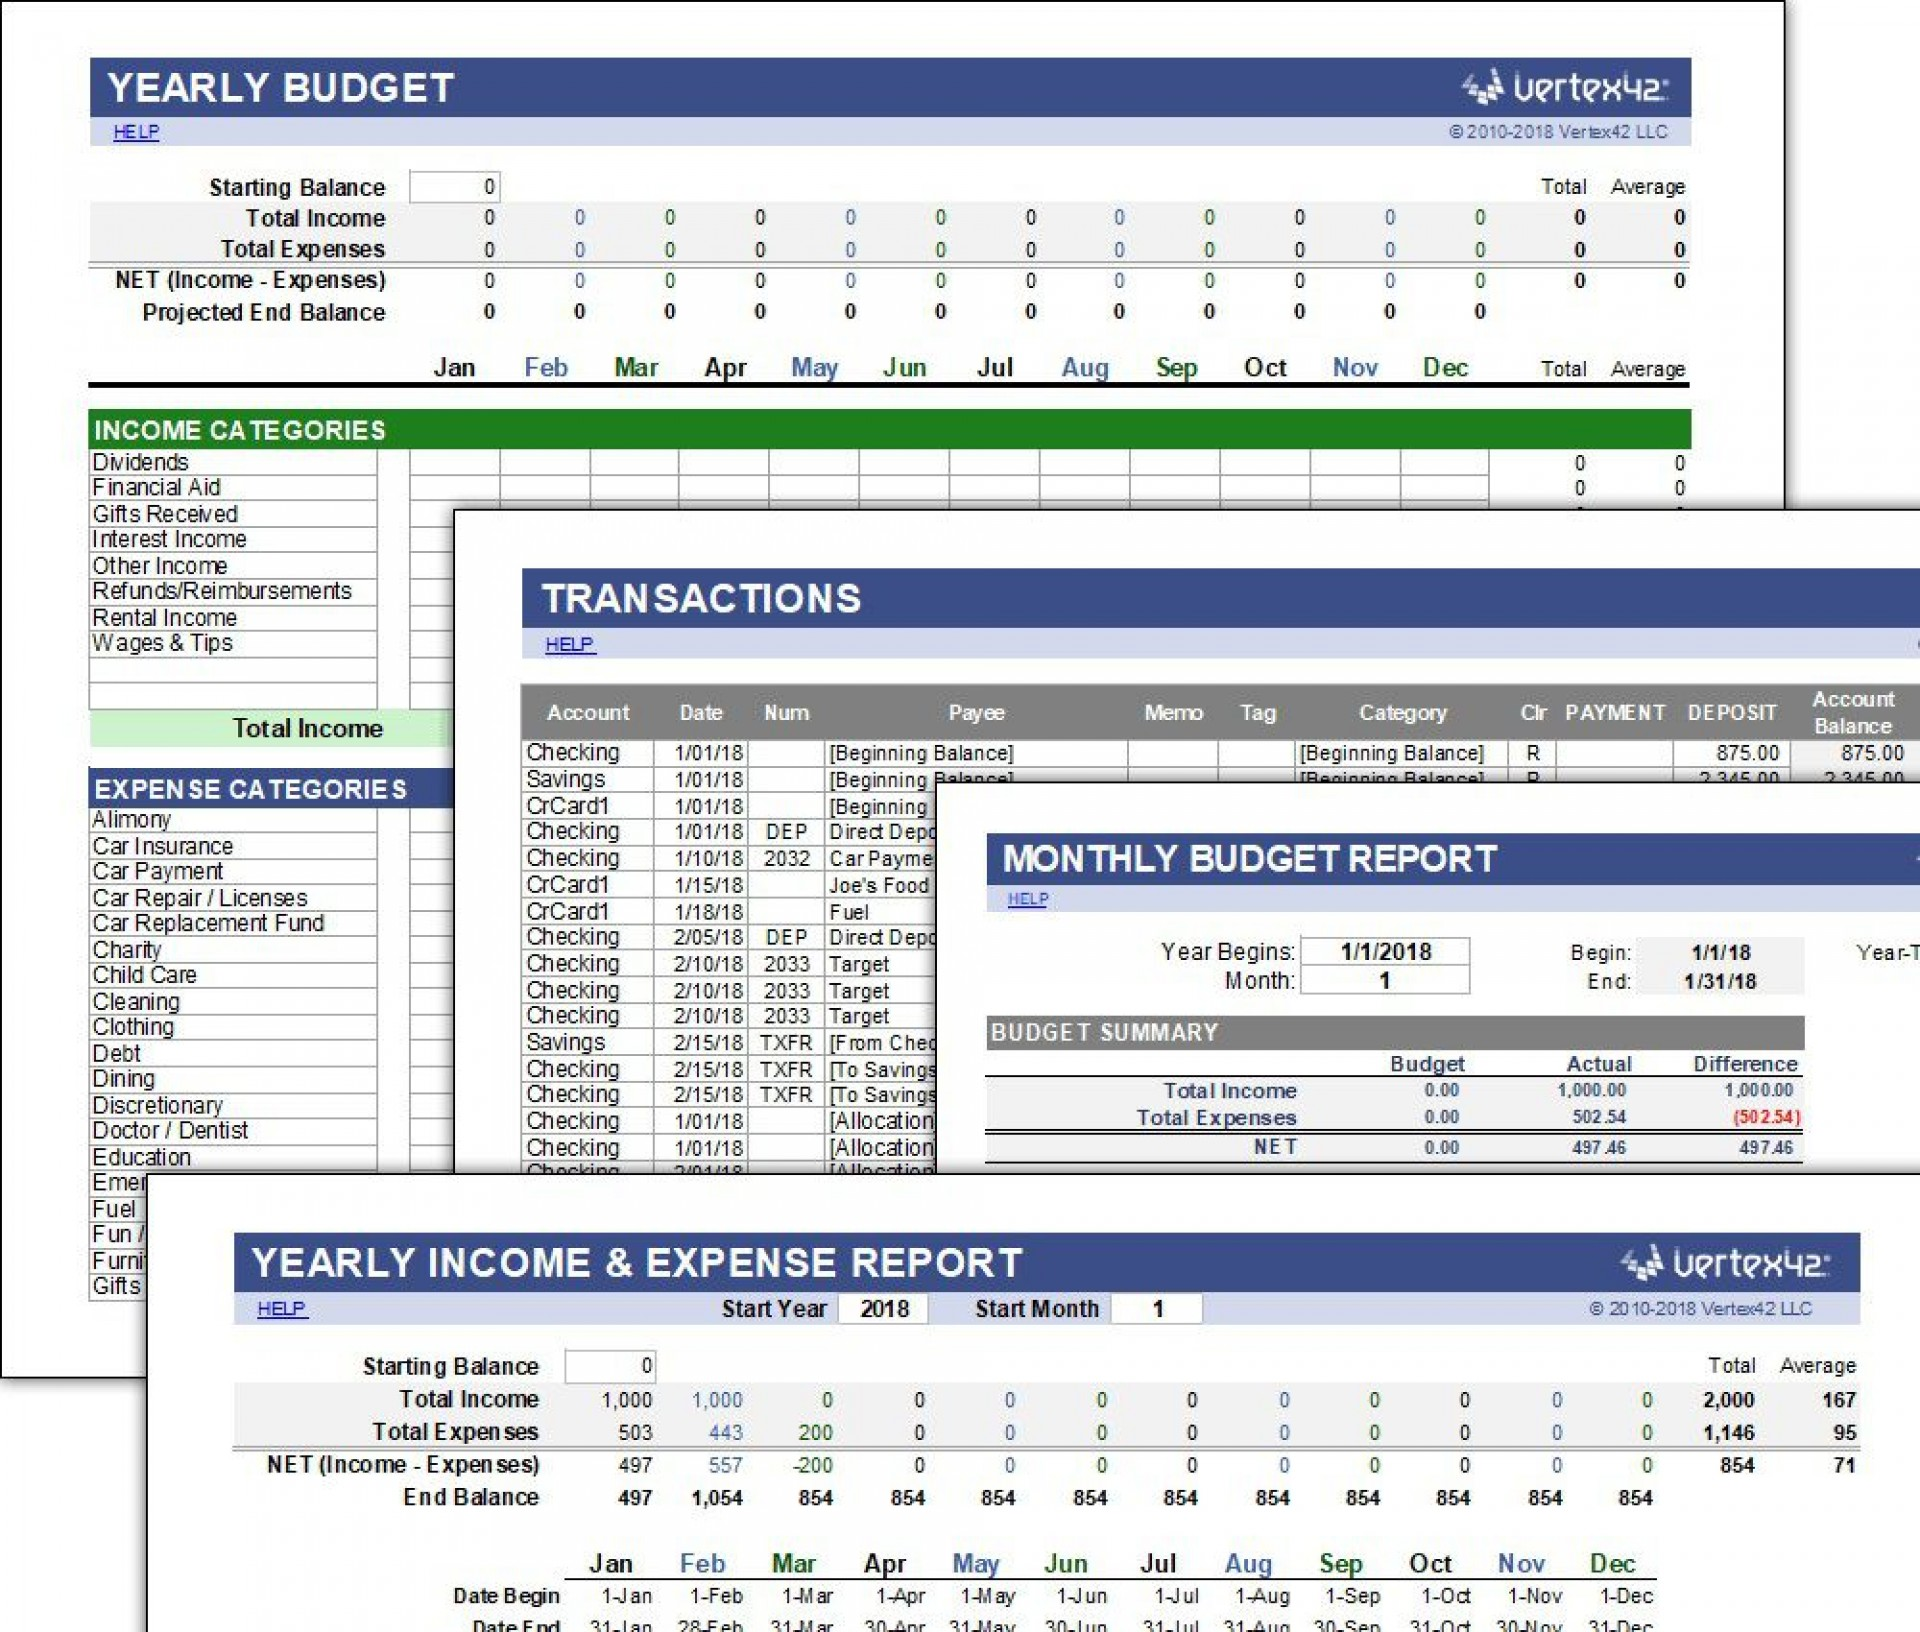 006 Wondrou Budgeting Template In Excel Inspiration  Training Budget Free Download Project1920